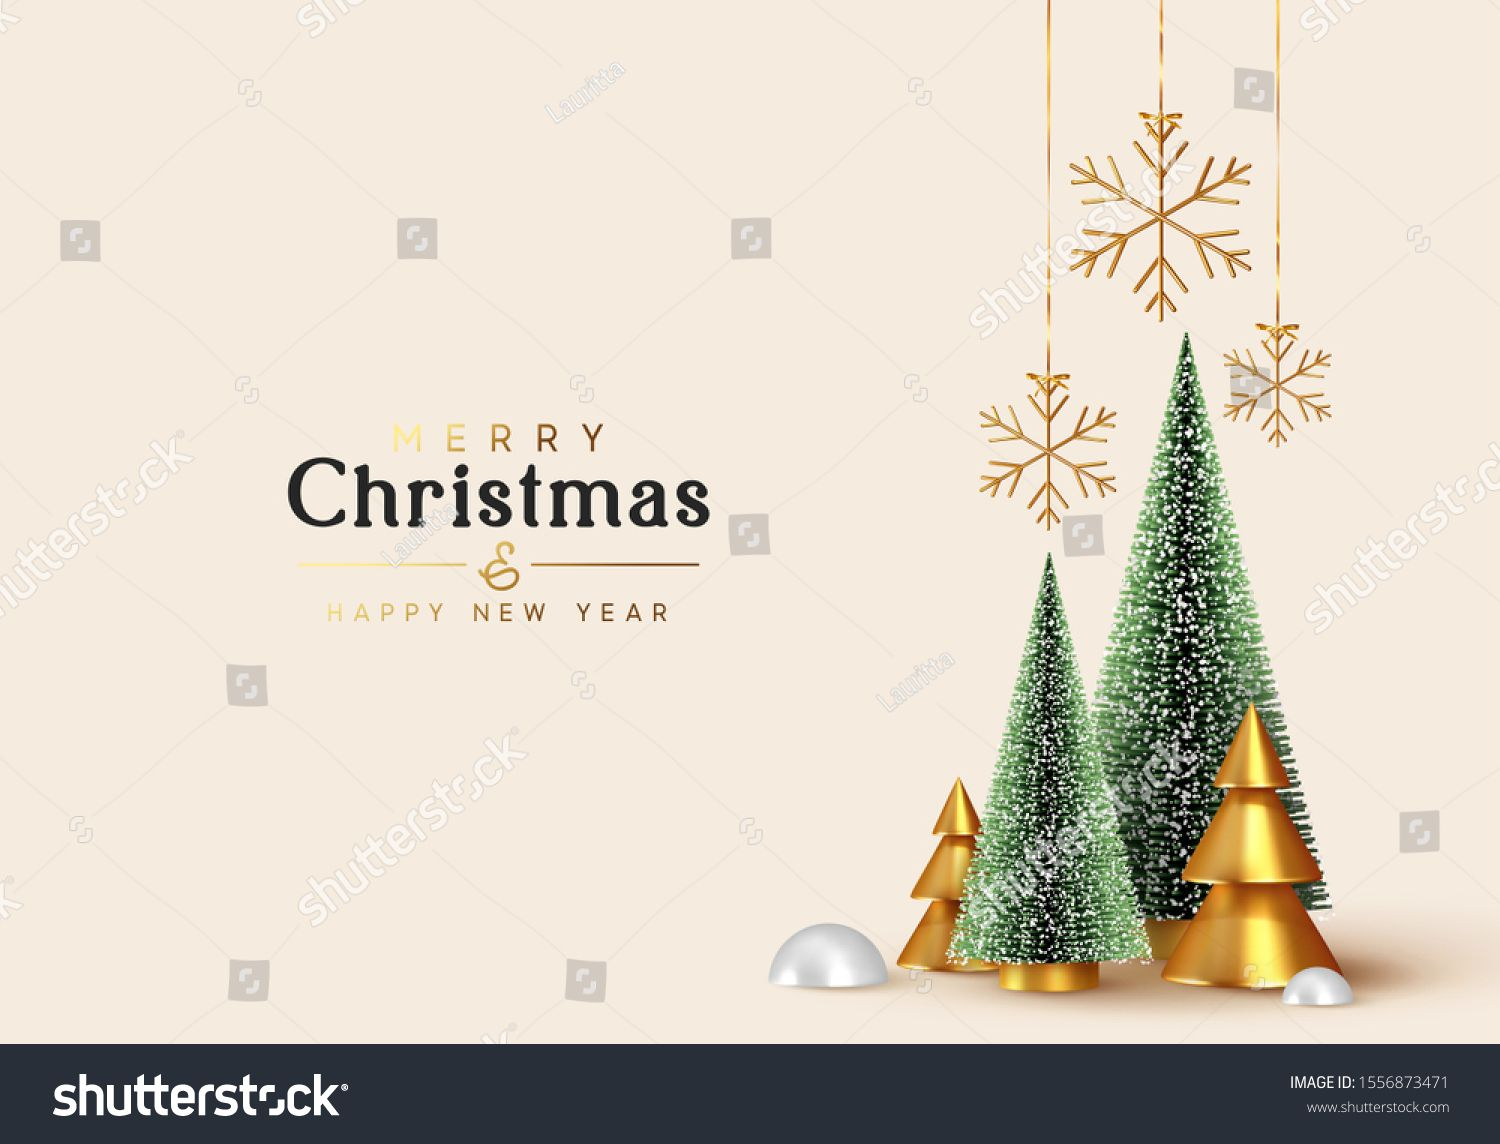 Christmas And New Year Background Xmas Pine Fir Lush Tree Conical Abstract Gold Christmas Trees Snow In 2020 New Years Background Gold Christmas Tree Gold Christmas